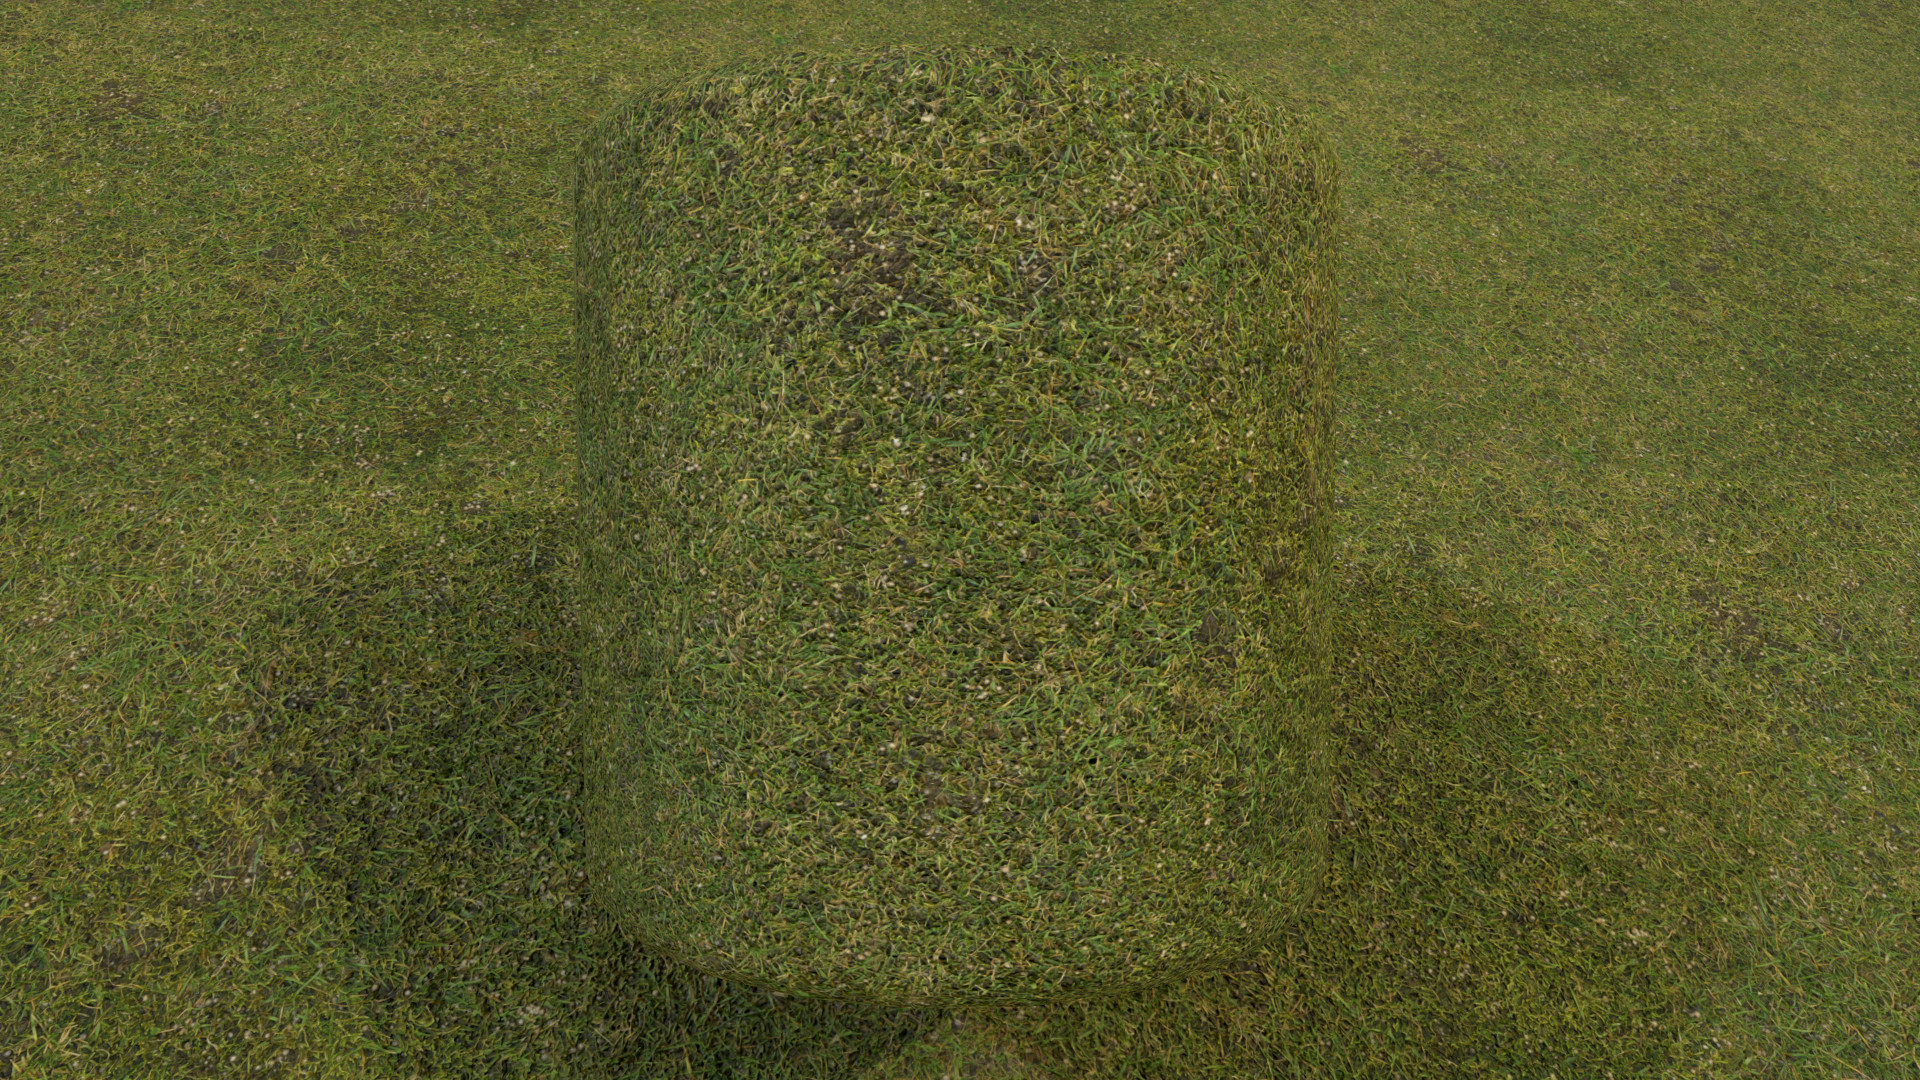 This was a Small Test Scan of a 2x2 Meter Piece of Lawn, made by me and a Colleague (Lukas Patrus).